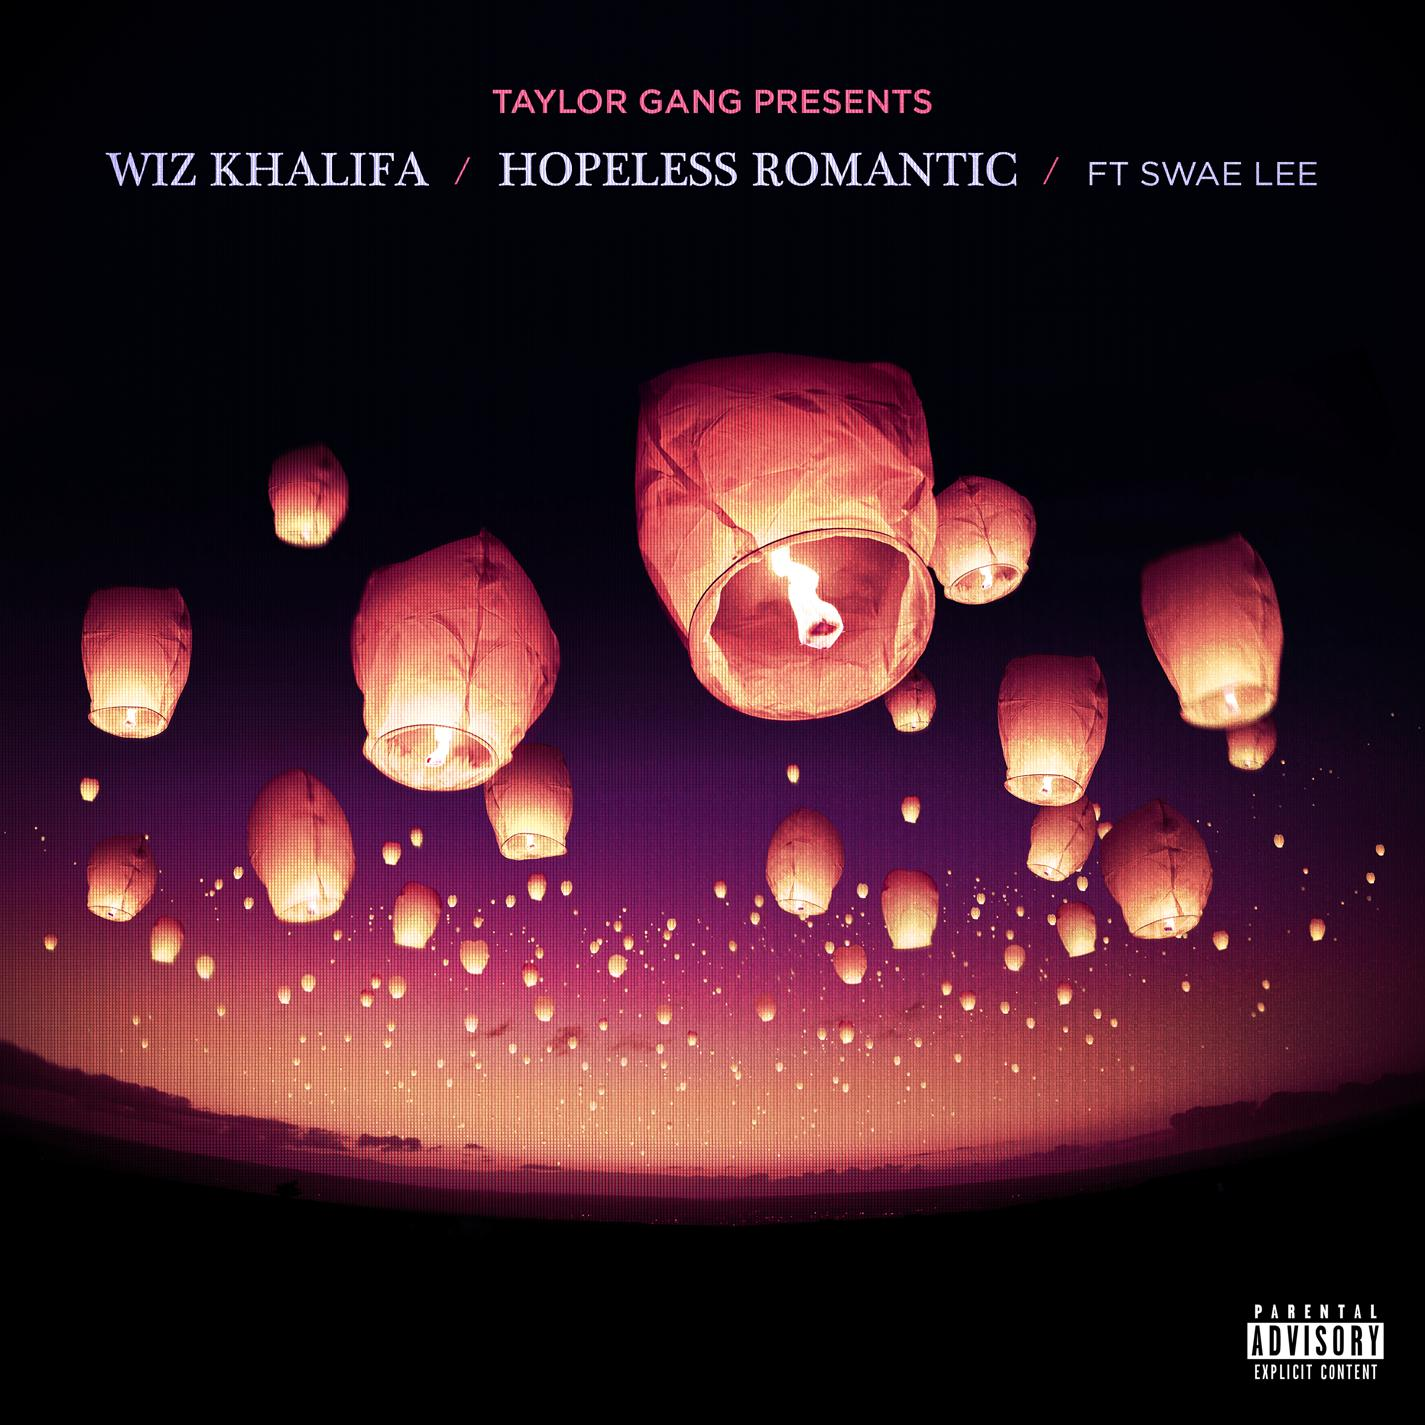 Wiz Khalifa - Hopeless Romantic (Ft. Swae Lee)  不用假音Swae Lee还是这么棒